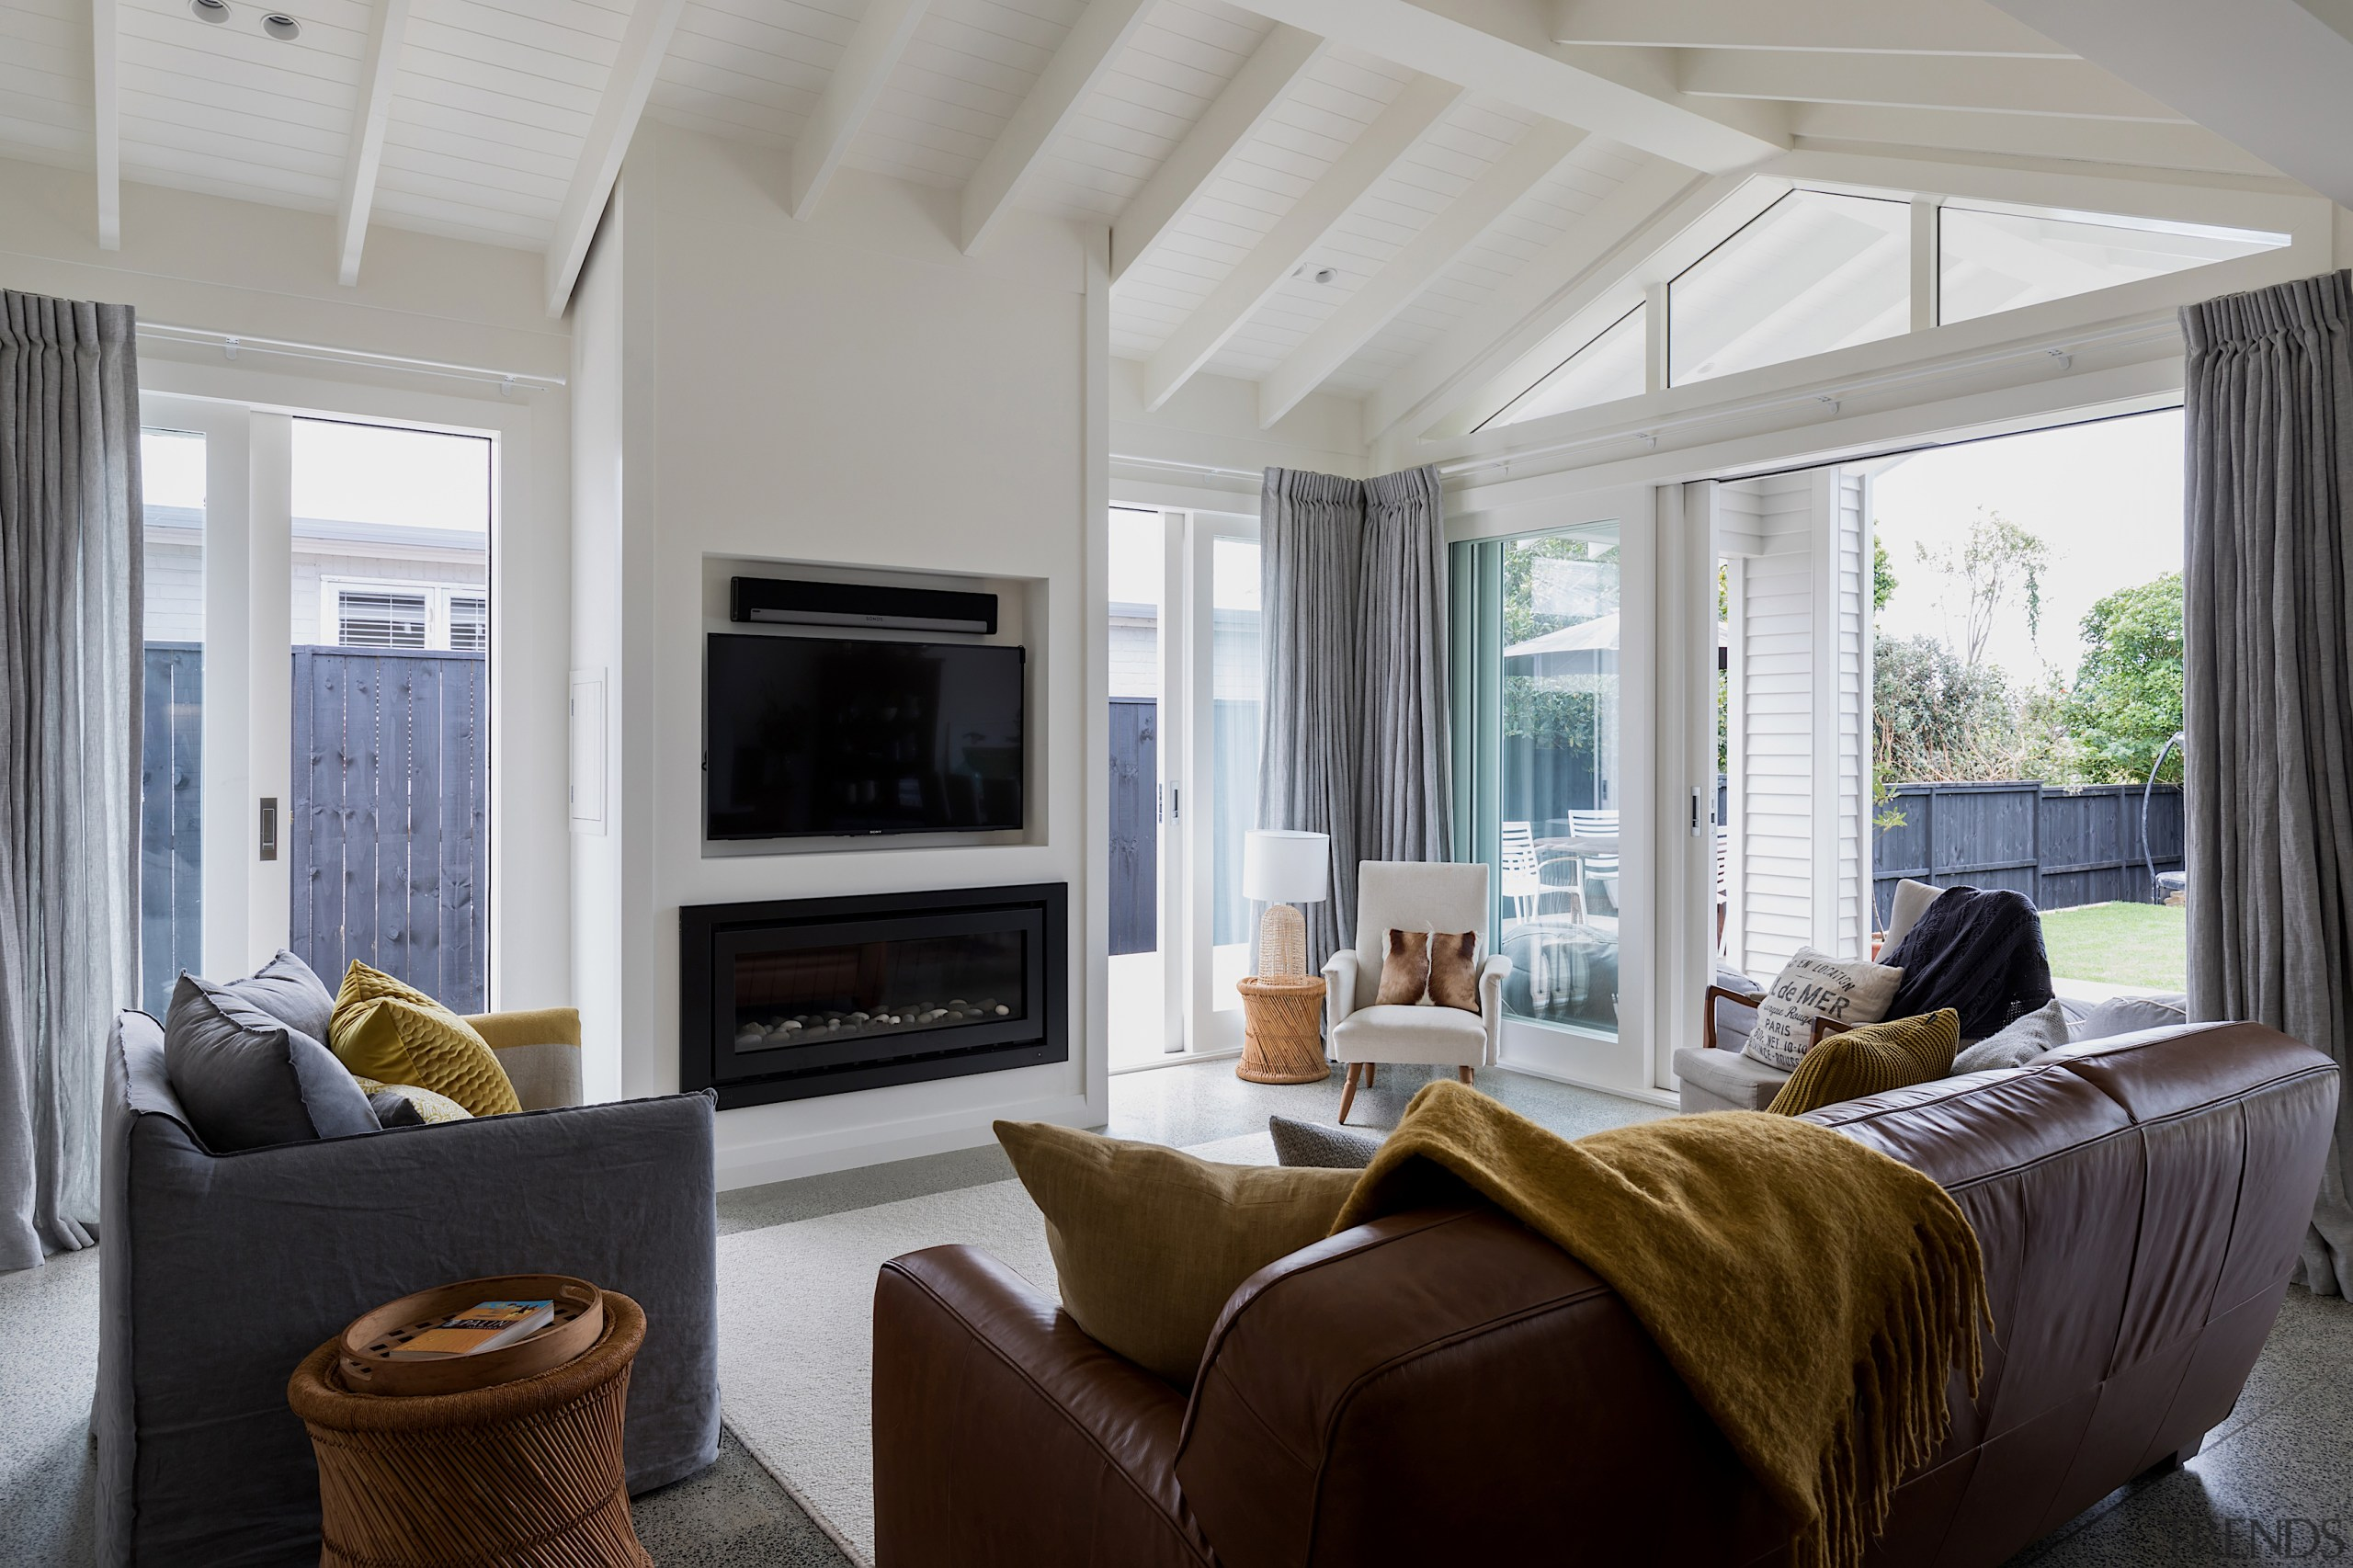 The living area opens to the outdoors on